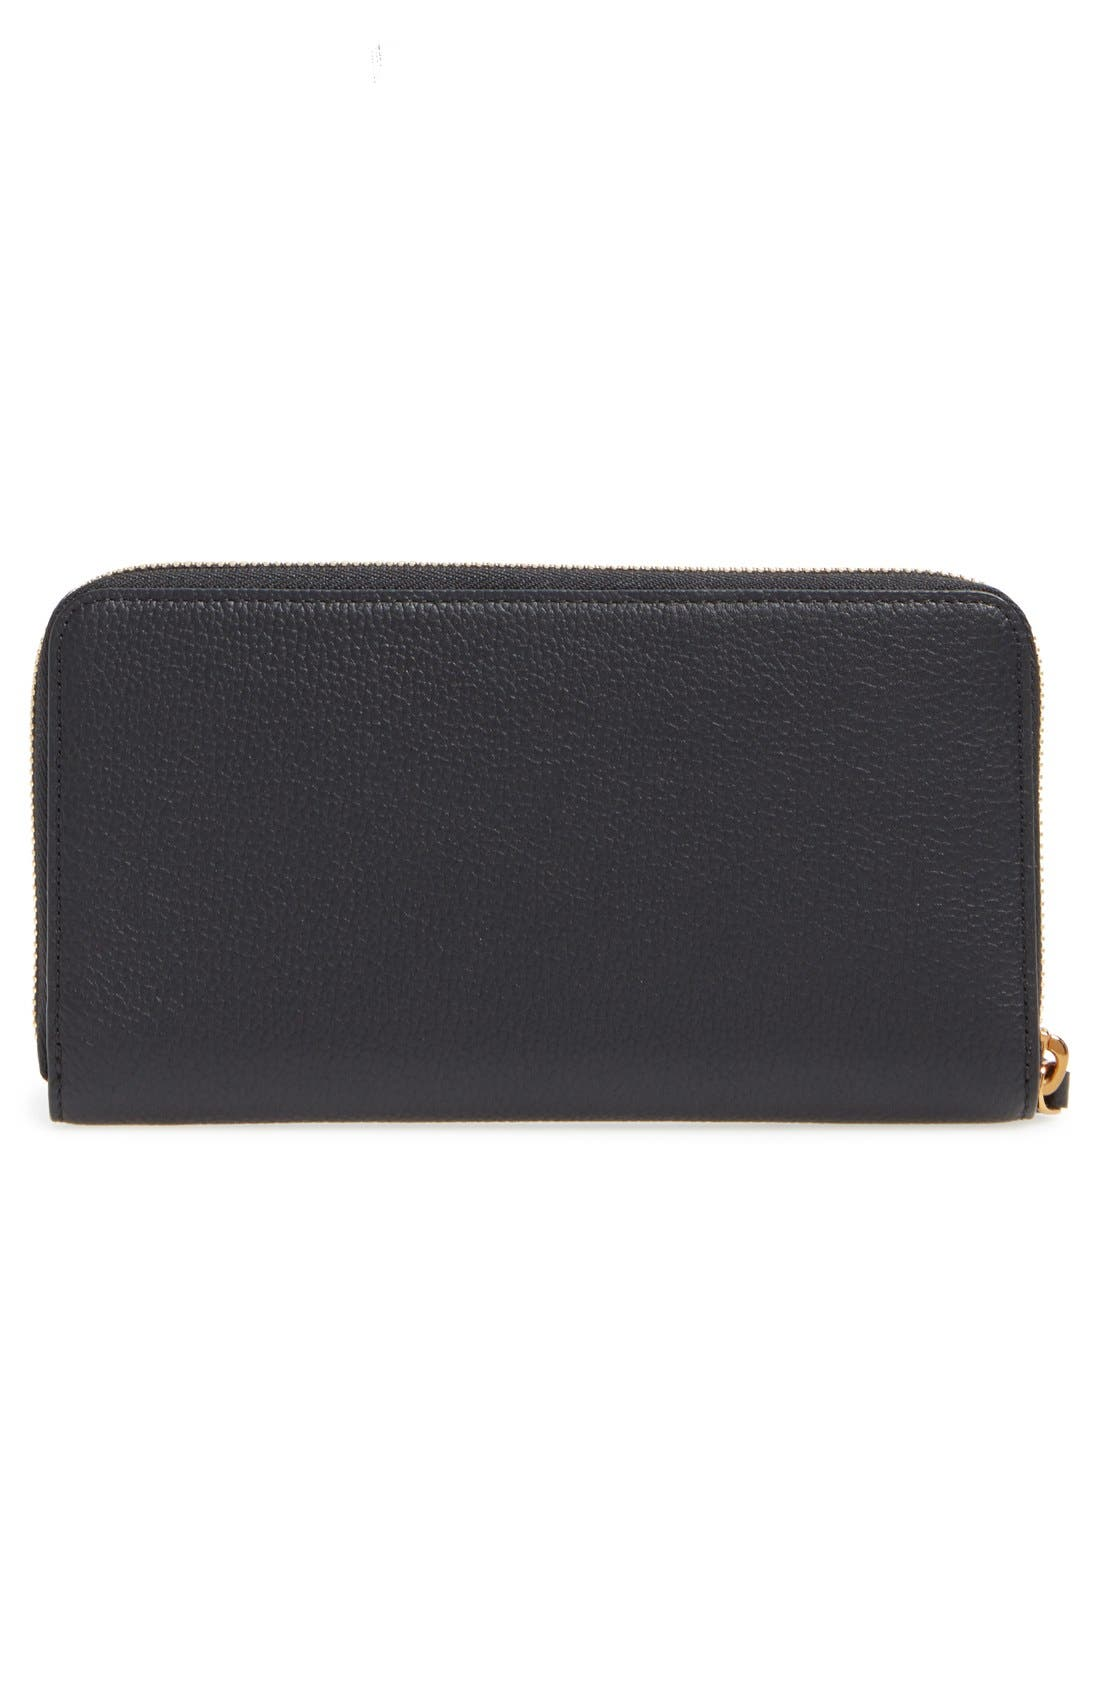 Milla Leather Zip Around Wallet,                             Alternate thumbnail 4, color,                             Black